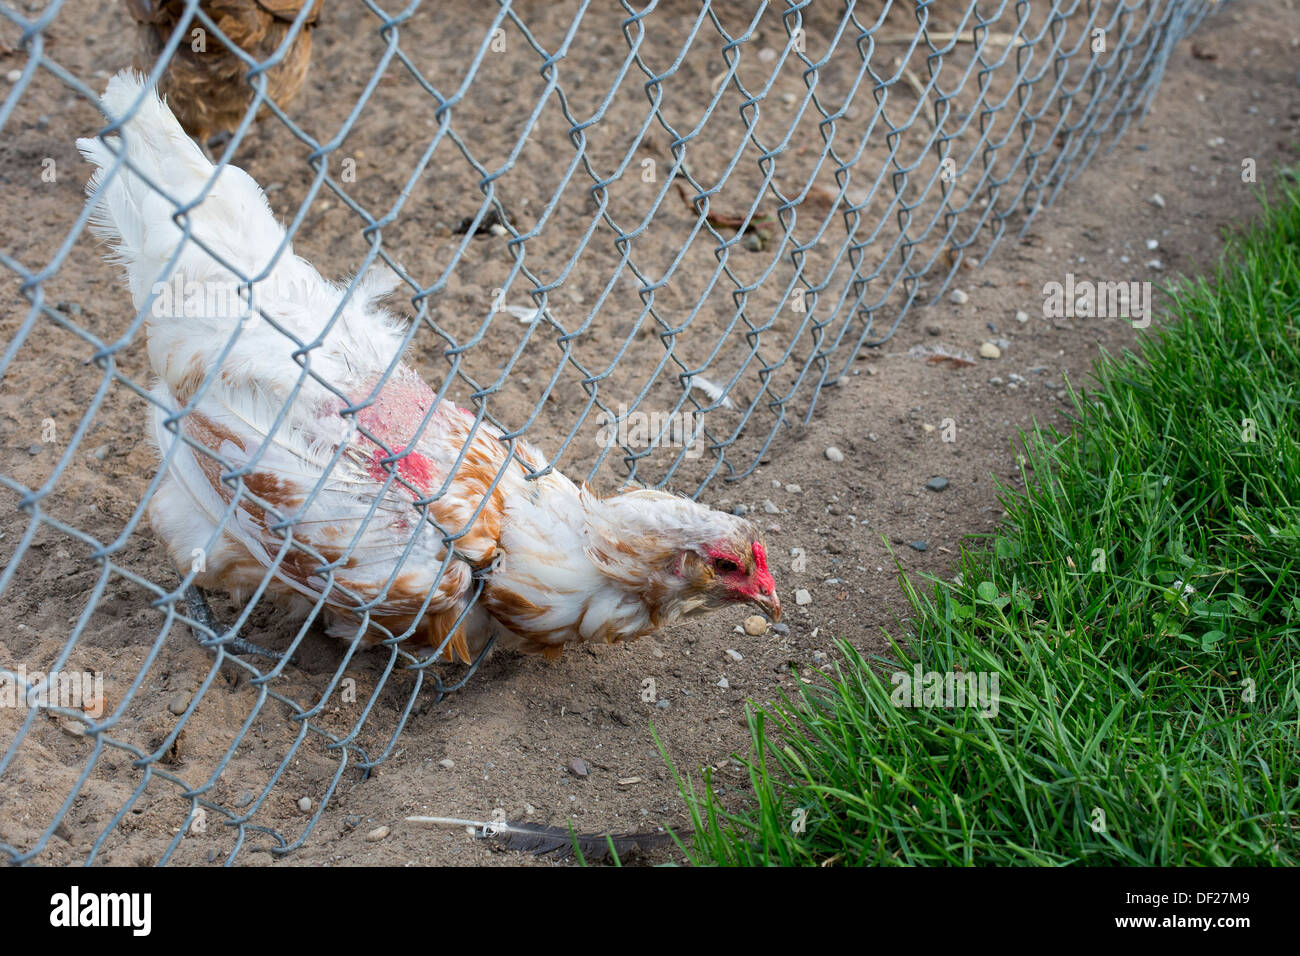 A chicken stretches through a fence at Grandpa Tiny's farm, a working historical farm and tourist attraction. - Stock Image